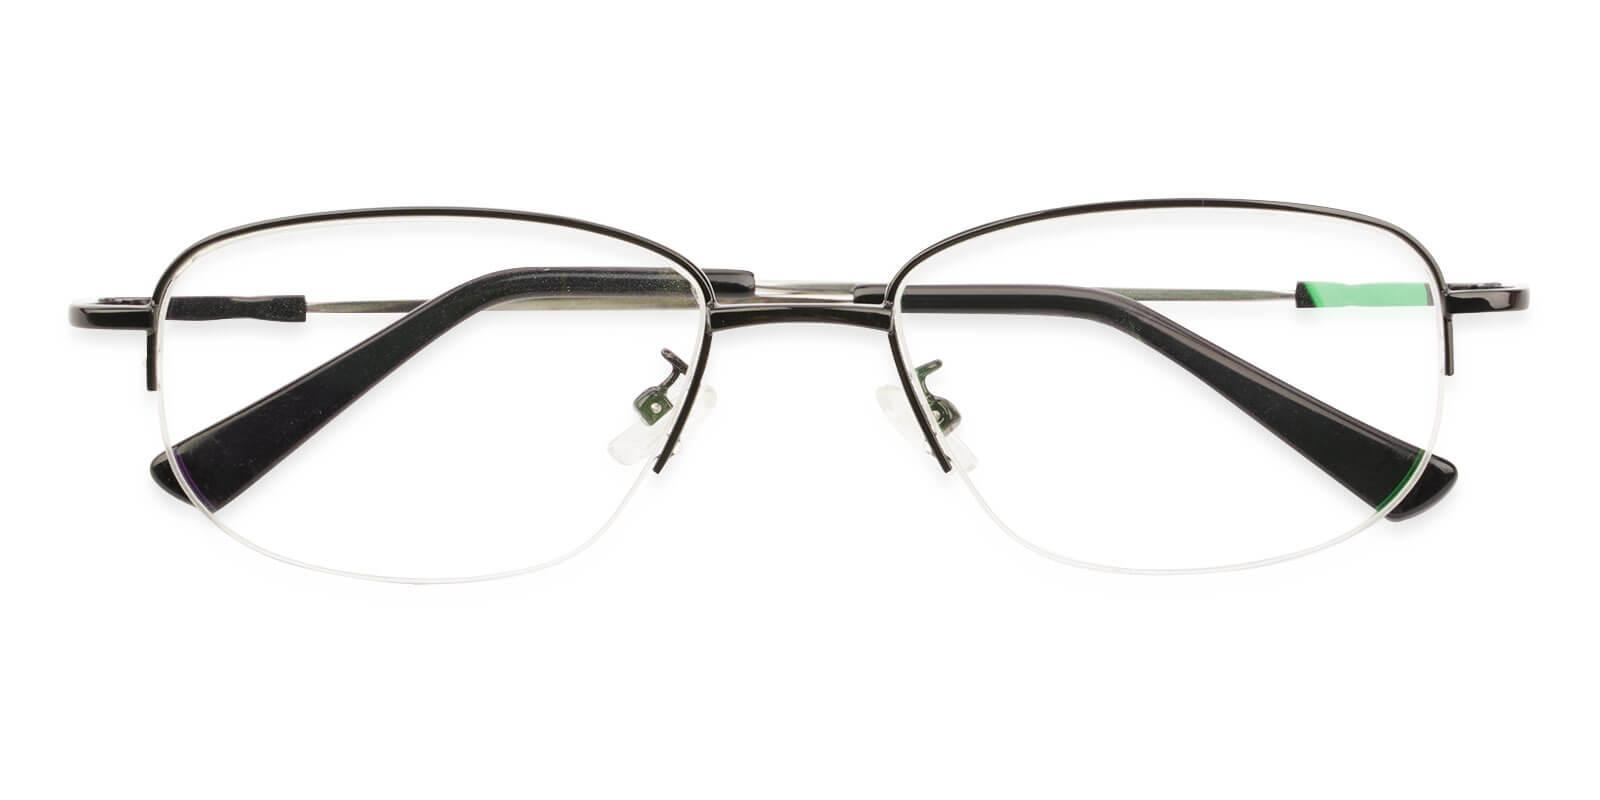 Joshua Black Metal Eyeglasses , NosePads Frames from ABBE Glasses